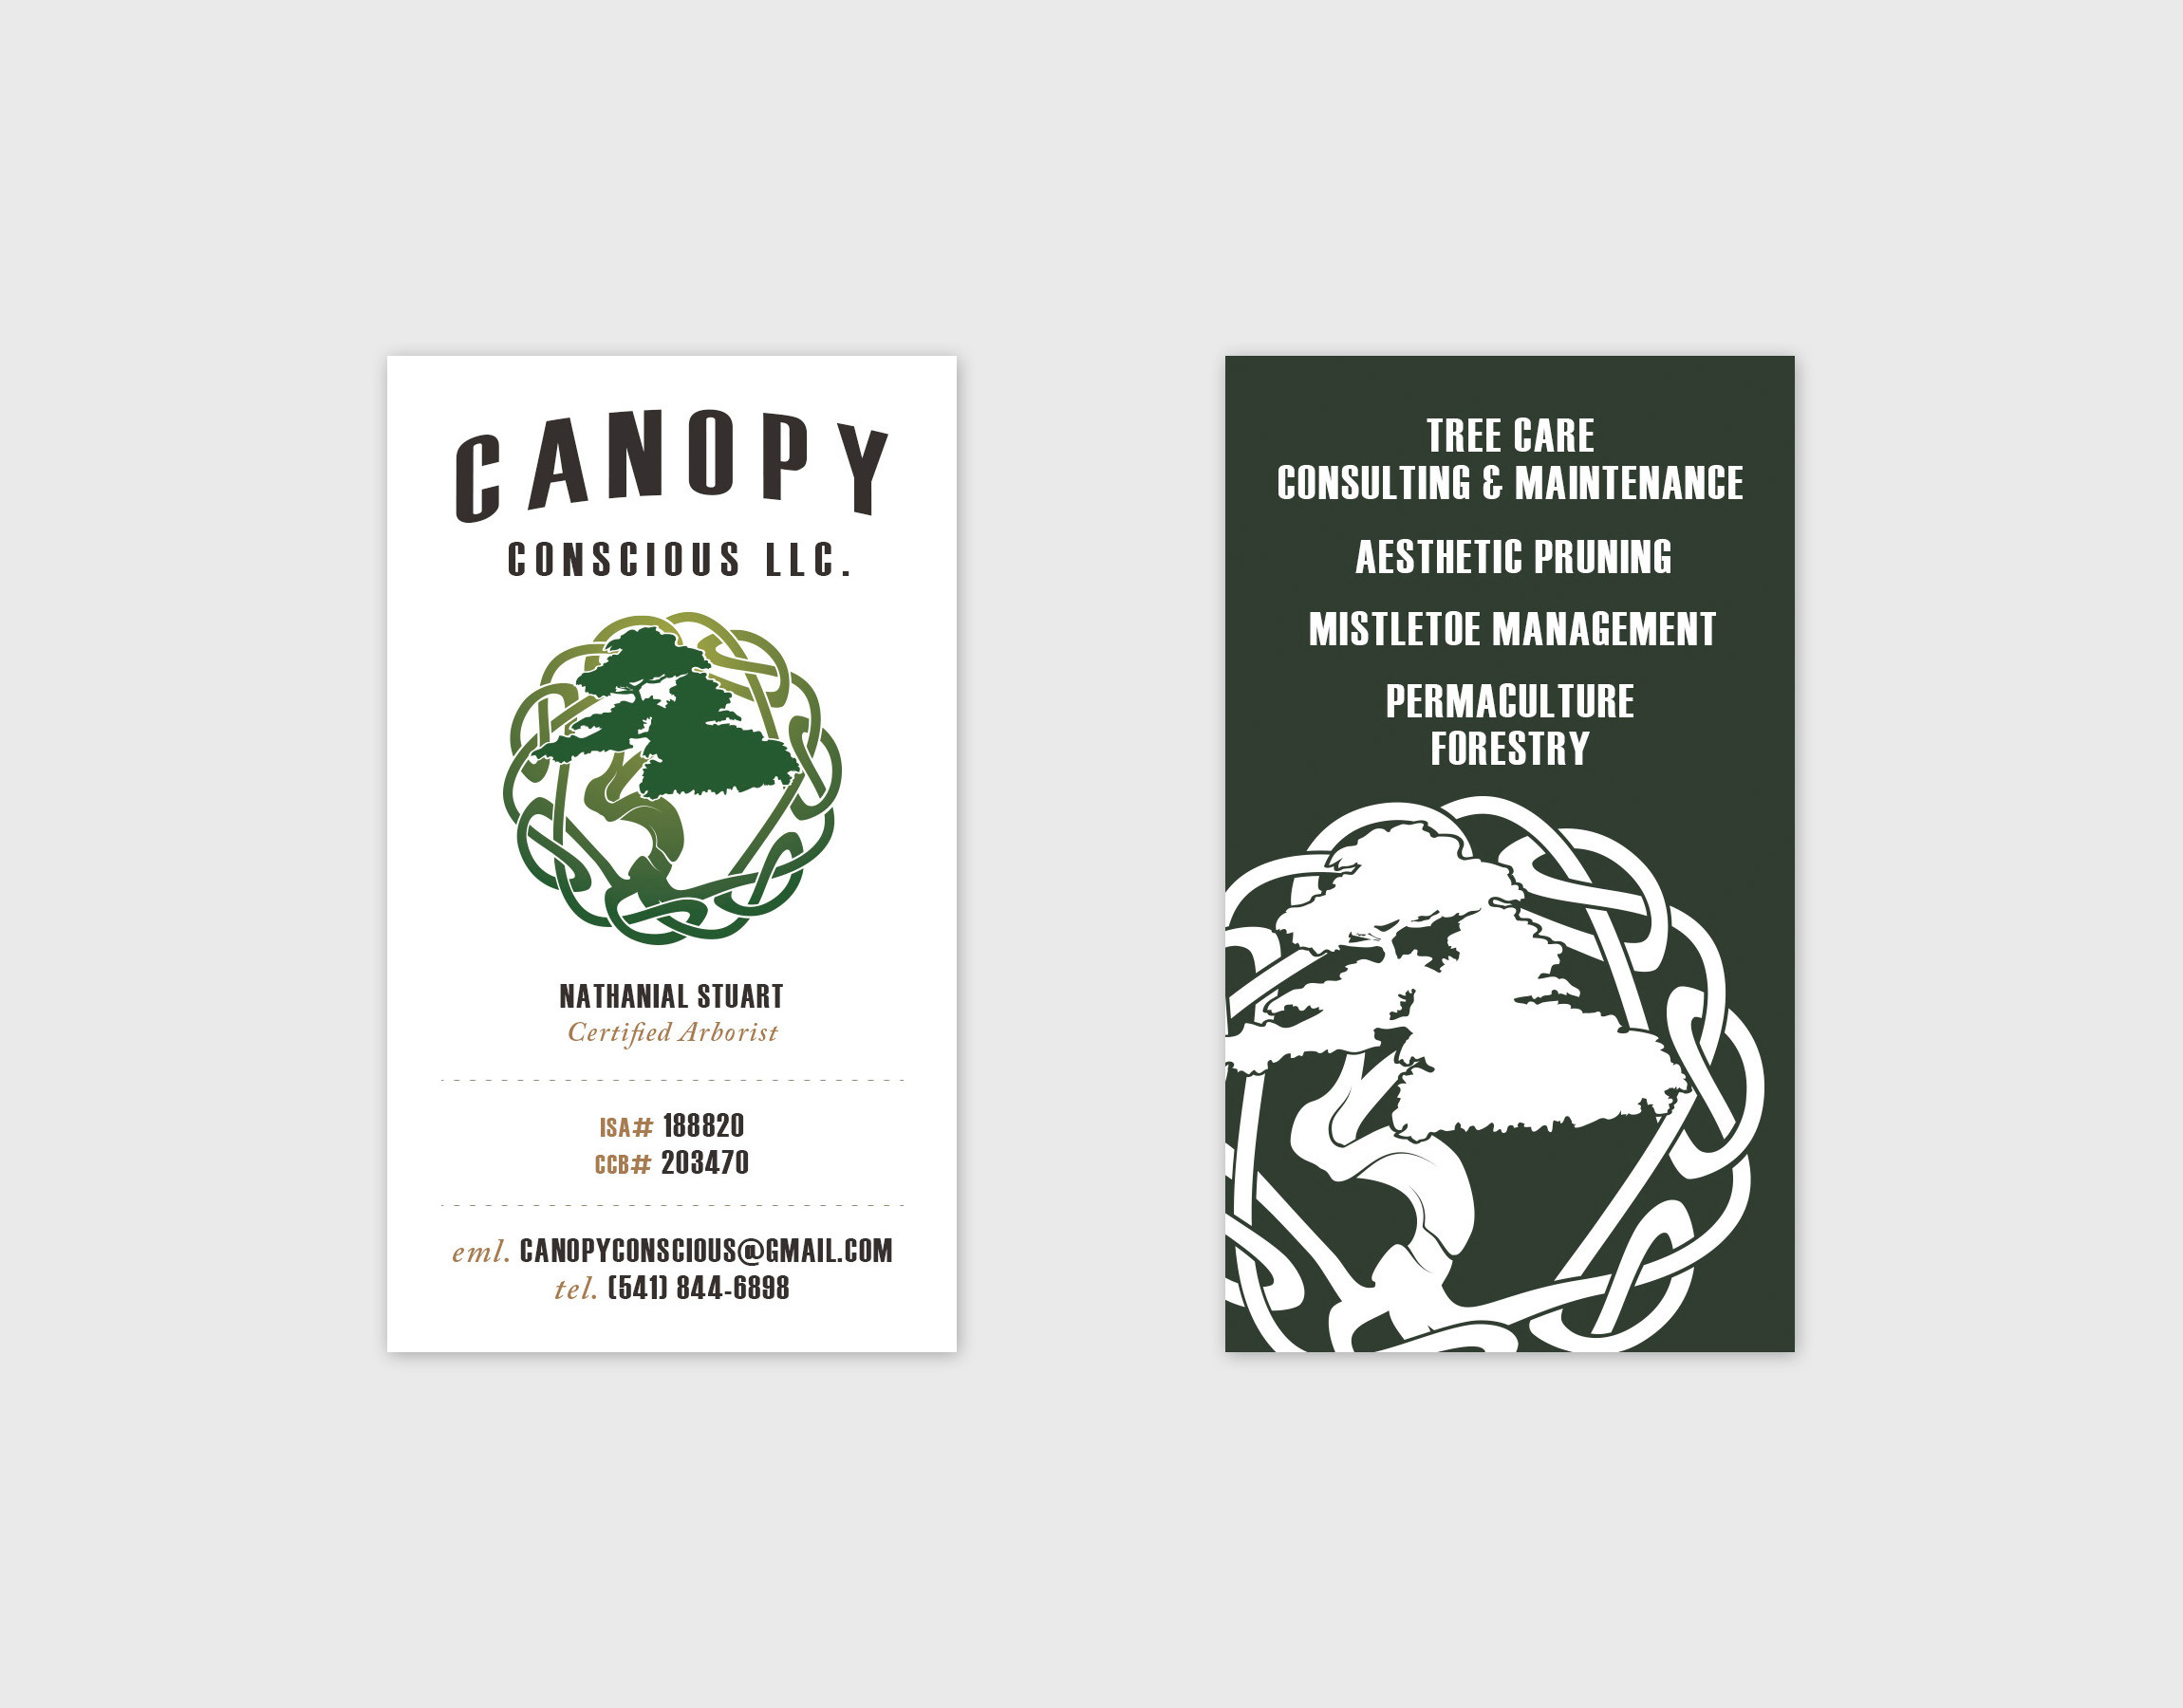 Canopy Conscious Logo Canopy Conscious Business Card  sc 1 st  Adoration & Canopy Conscious Logo | Adoration - Seattle Graphic Design ...